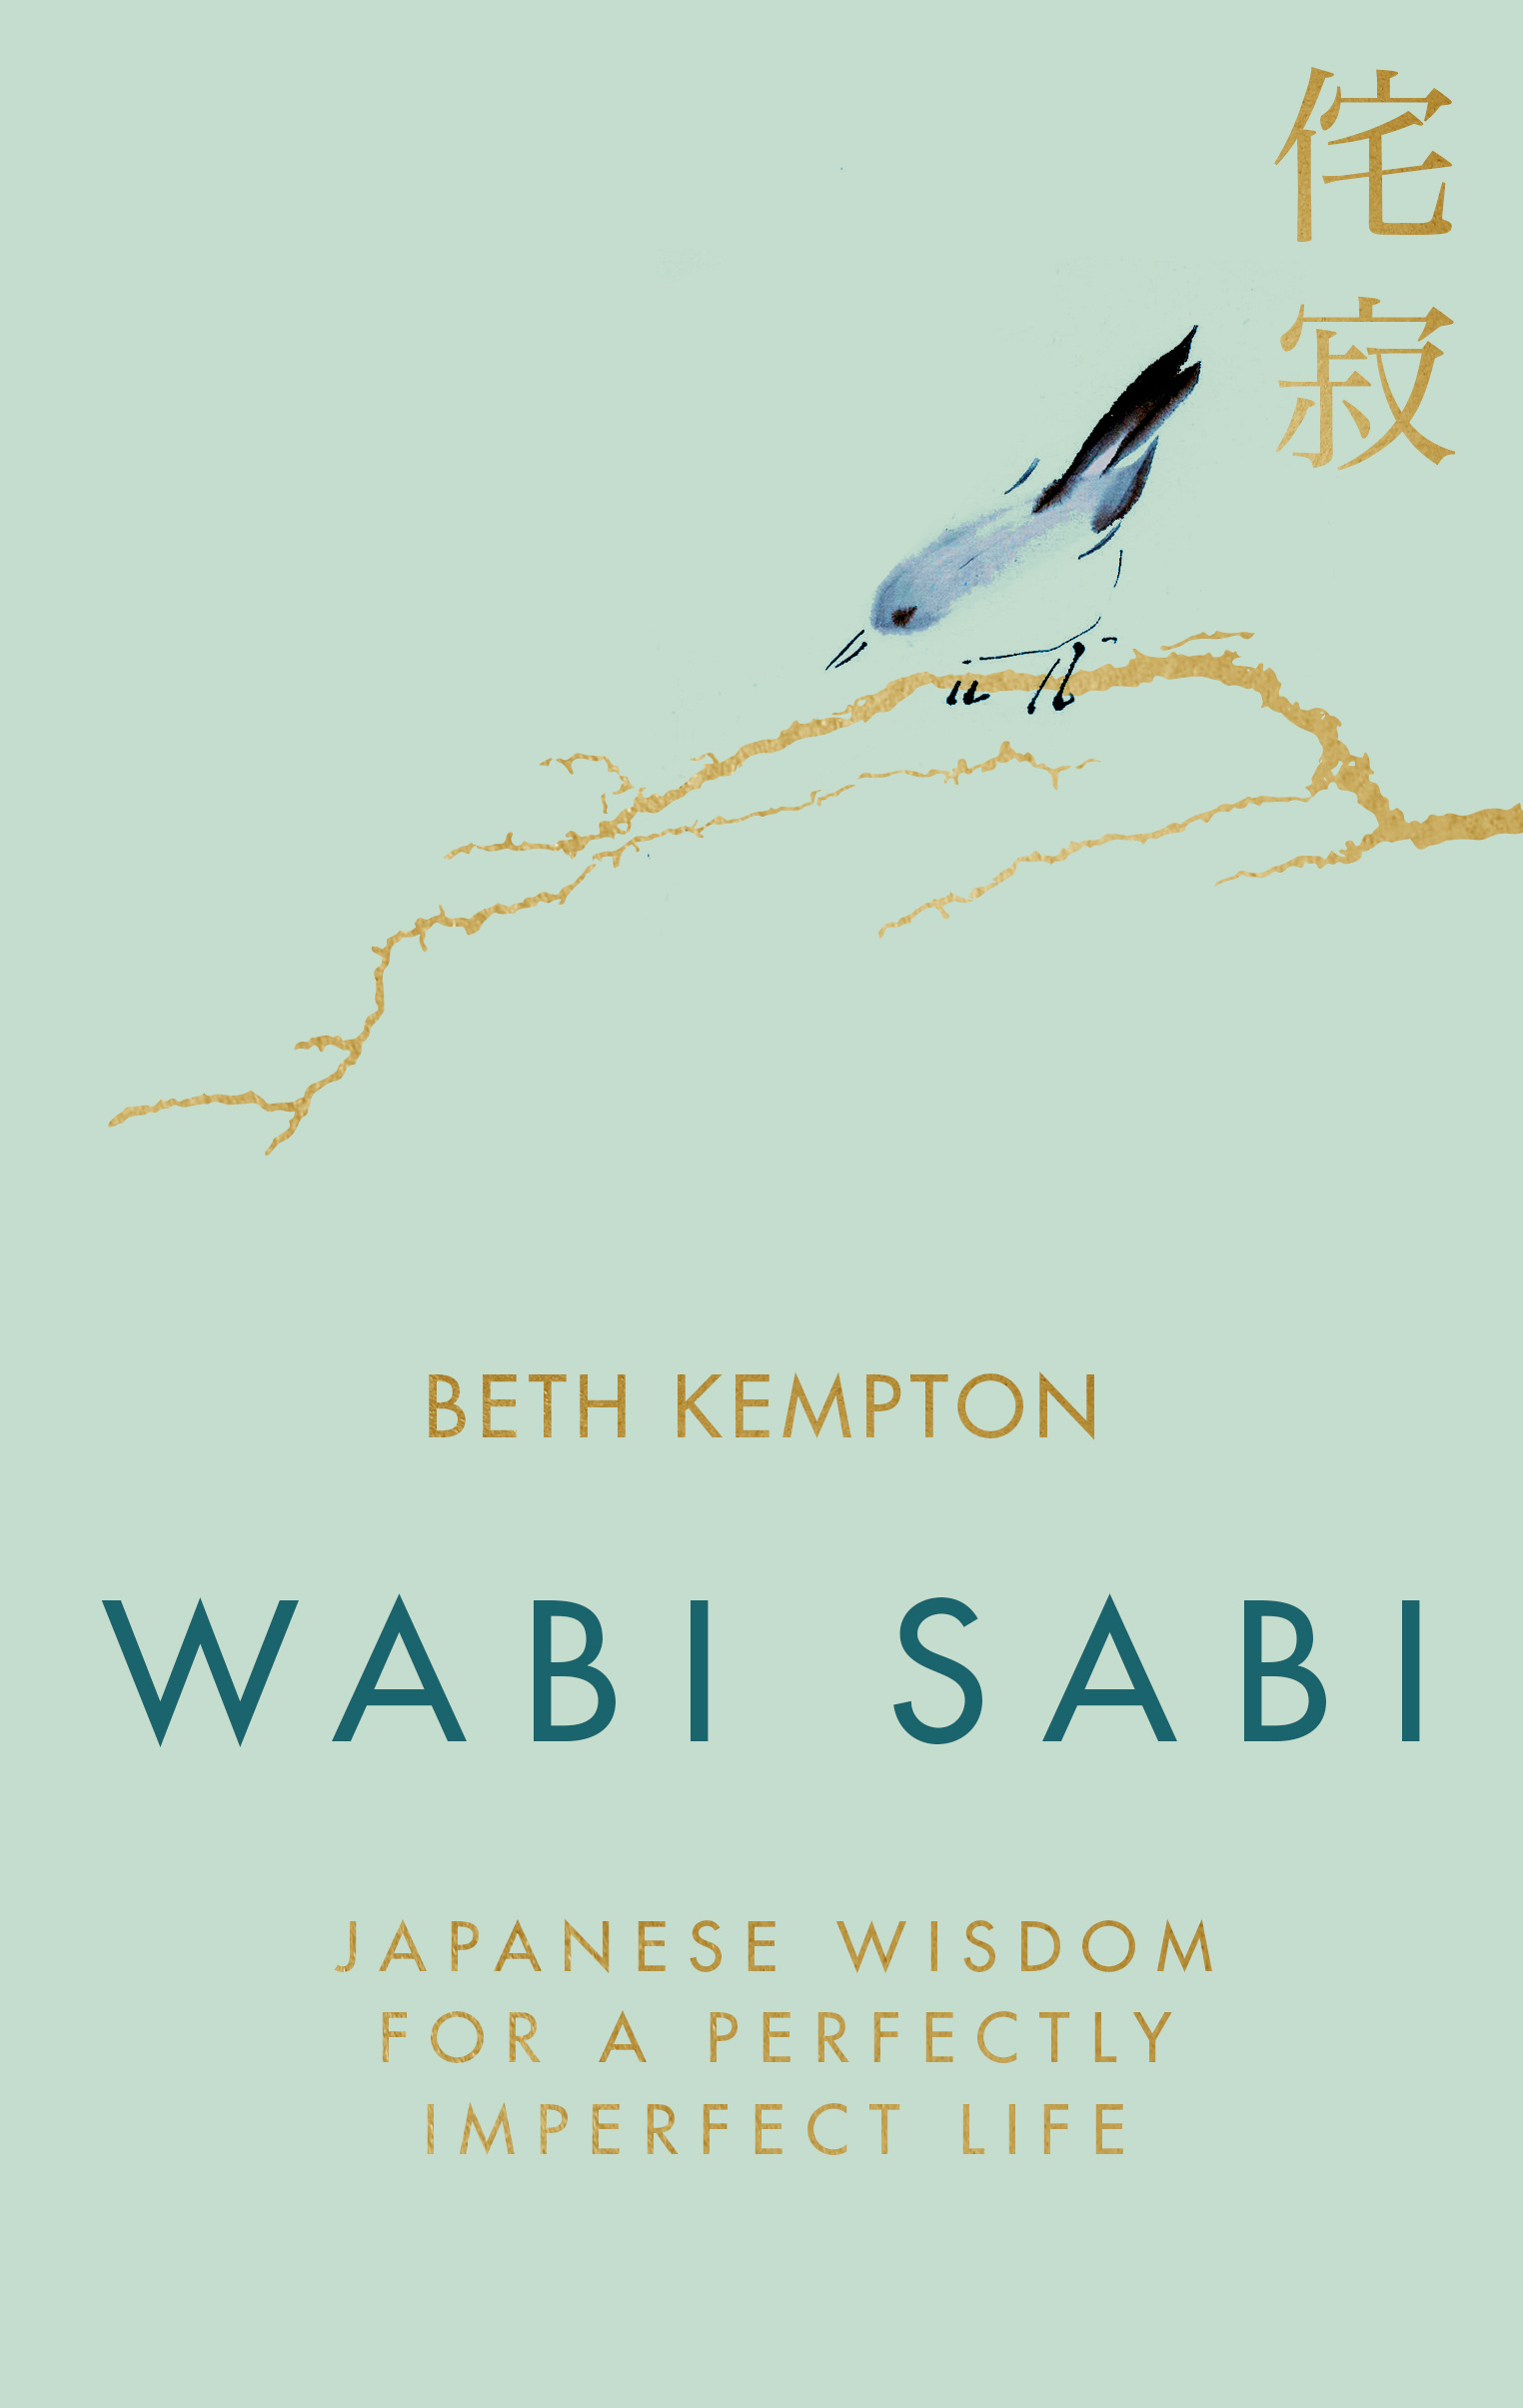 Wabi Sabi: Japanese Wisdom for a Perfectly Imperfect Life by Beth Kempton, ISBN: 9780349421001